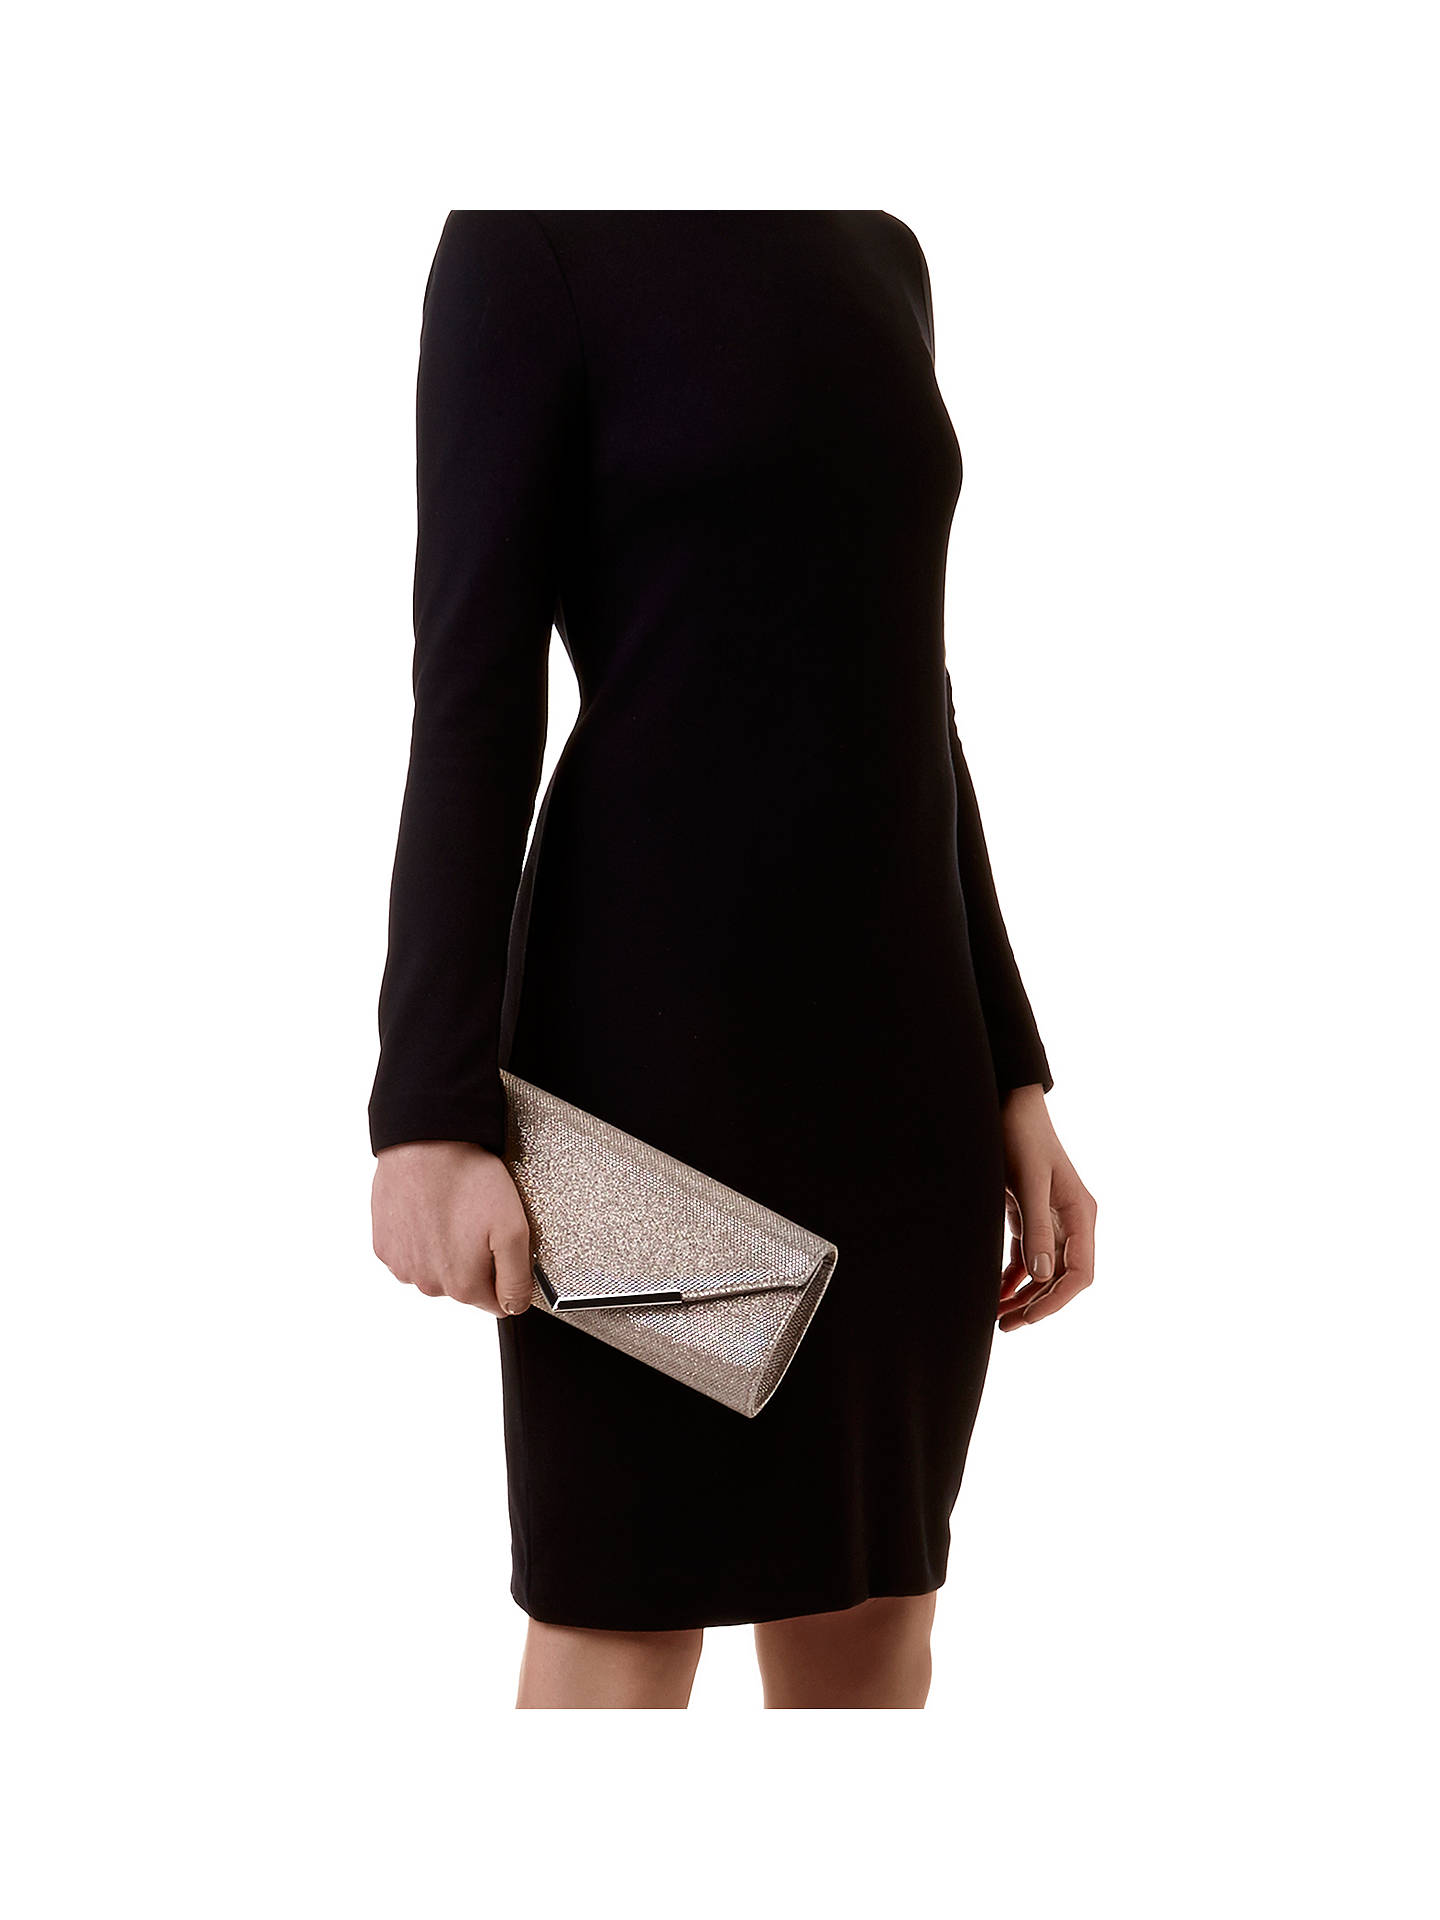 BuyCarvela Daphne Envelope Clutch Bag, Silver Online at johnlewis.com